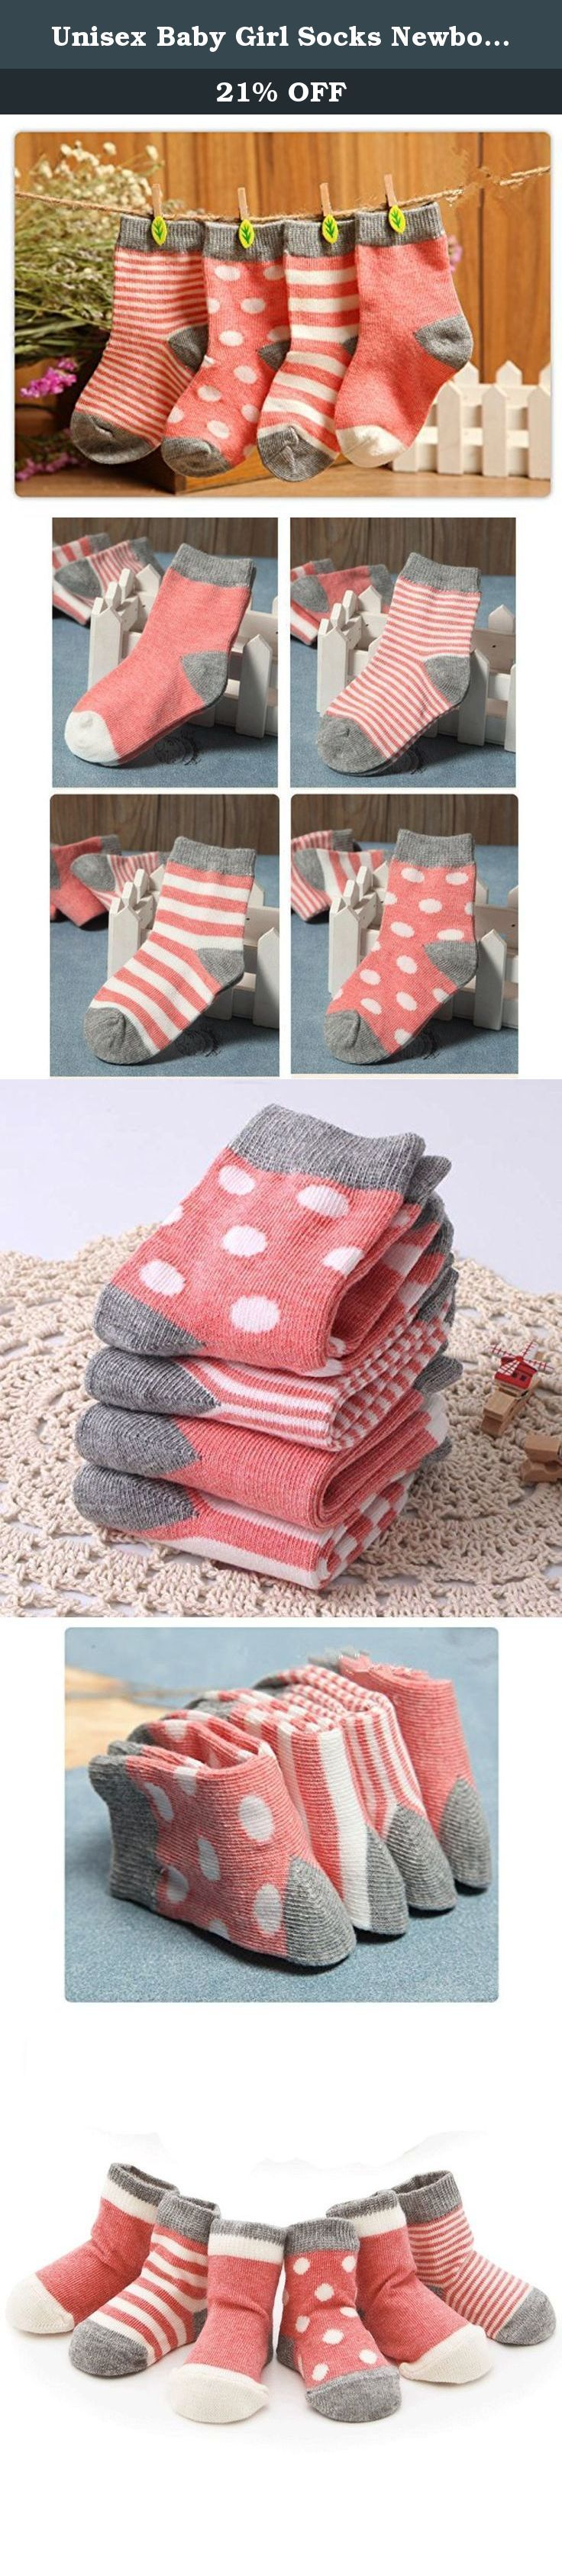 Unisex Baby Girl Socks Newborn 4 Pack Little Luxuries Design Socks by Ola Kids. Unisex Baby Socks Newborn 4 Pack Little Luxuries Design Socks by Ola Kids Packing: A group of 4 pairs into a matte bag Size: XS 0-6 months (US Size:0-6cm, Length: 9cm, Suggest age:0-6 months), S 6-12 months (US Size:7-12m, Length:11cm,Suggest age:6-12 months), M 1-2 years old (US Size:13-24m, Length:12.5cm, Suggest age:12-24 months) .